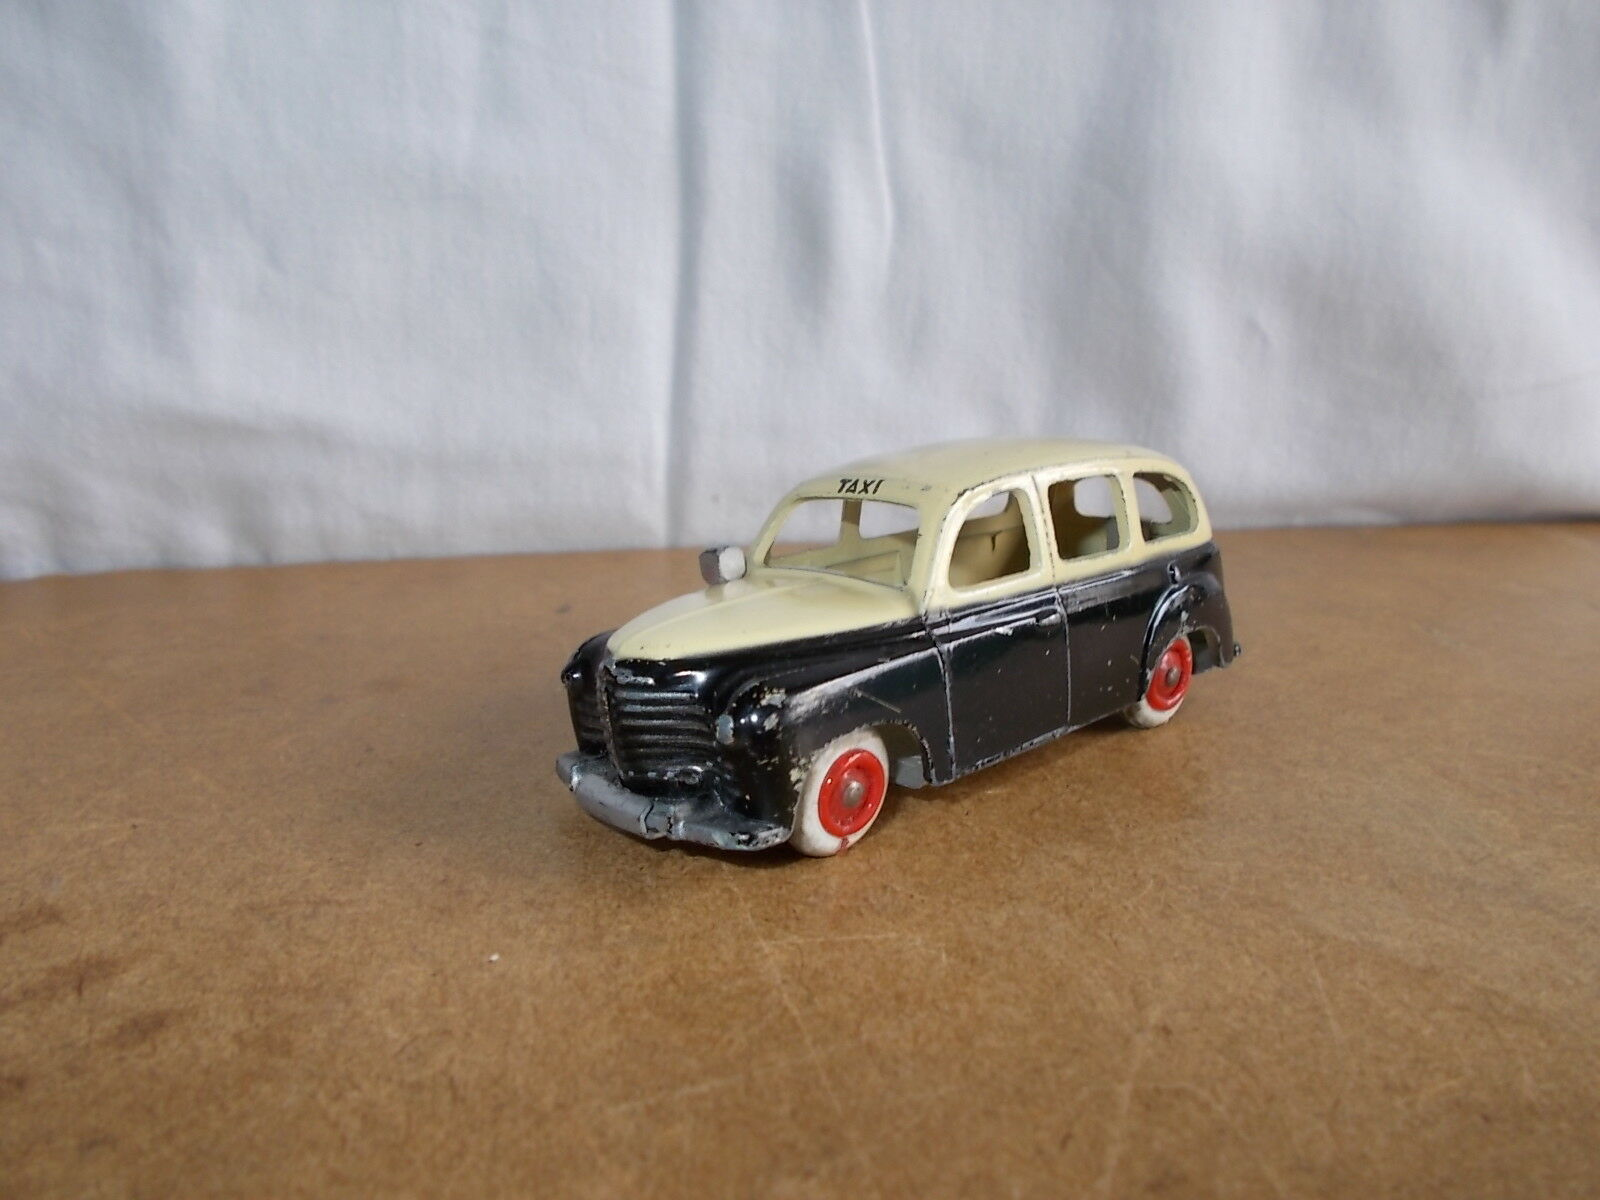 Ancienne miniature - 1 43 CIJ made in France - TAXI RENAULT COLORALE - 50s - (1)